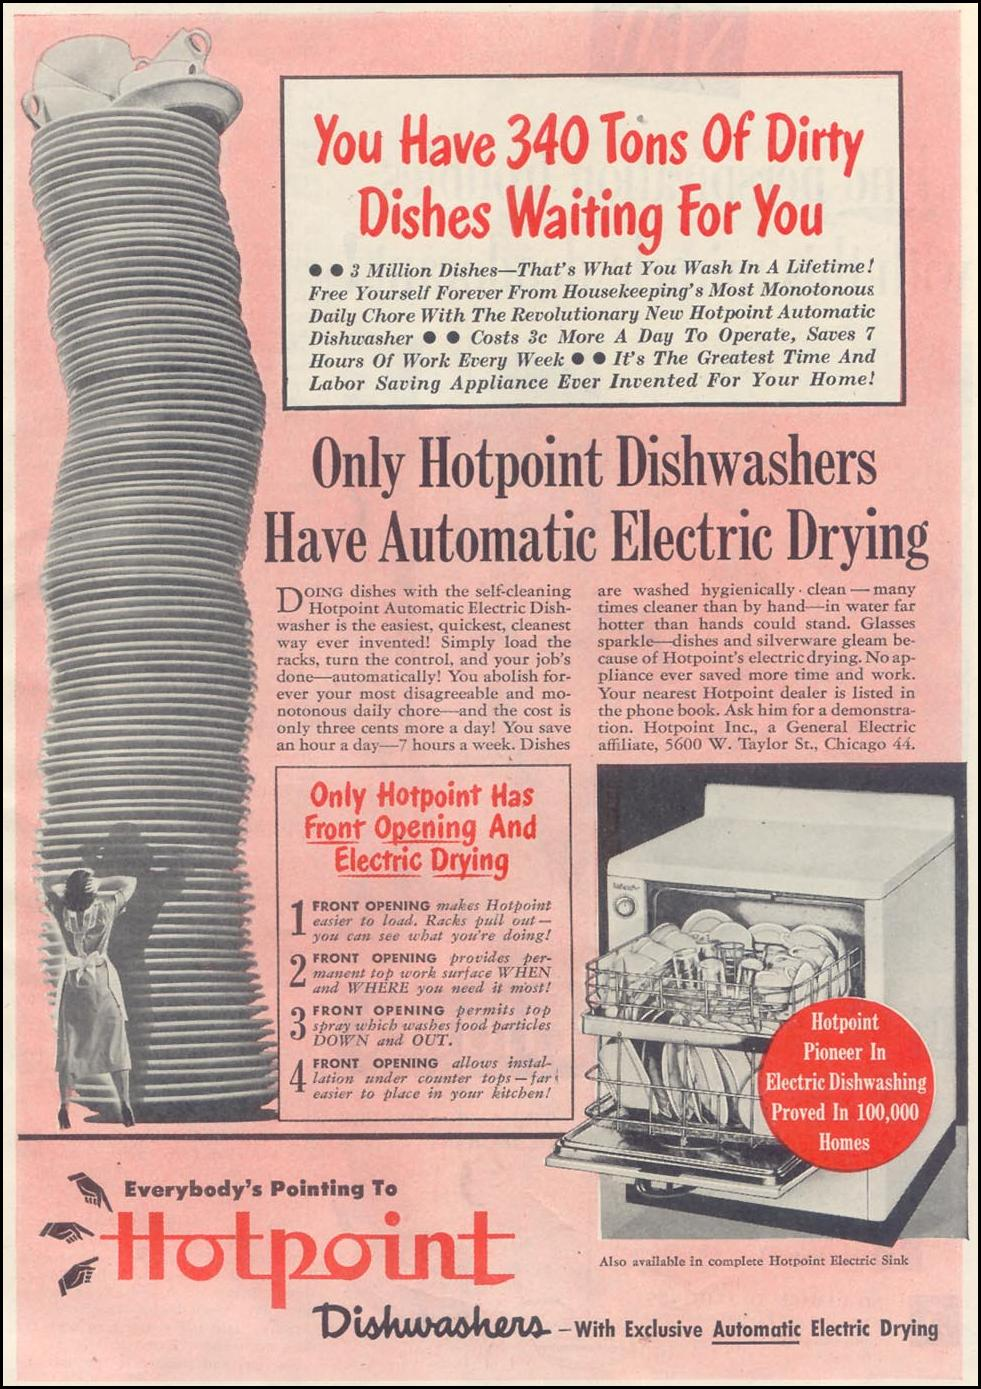 HOTPOINT DISHWASHERS GOOD HOUSEKEEPING 07/01/1948 p. 101